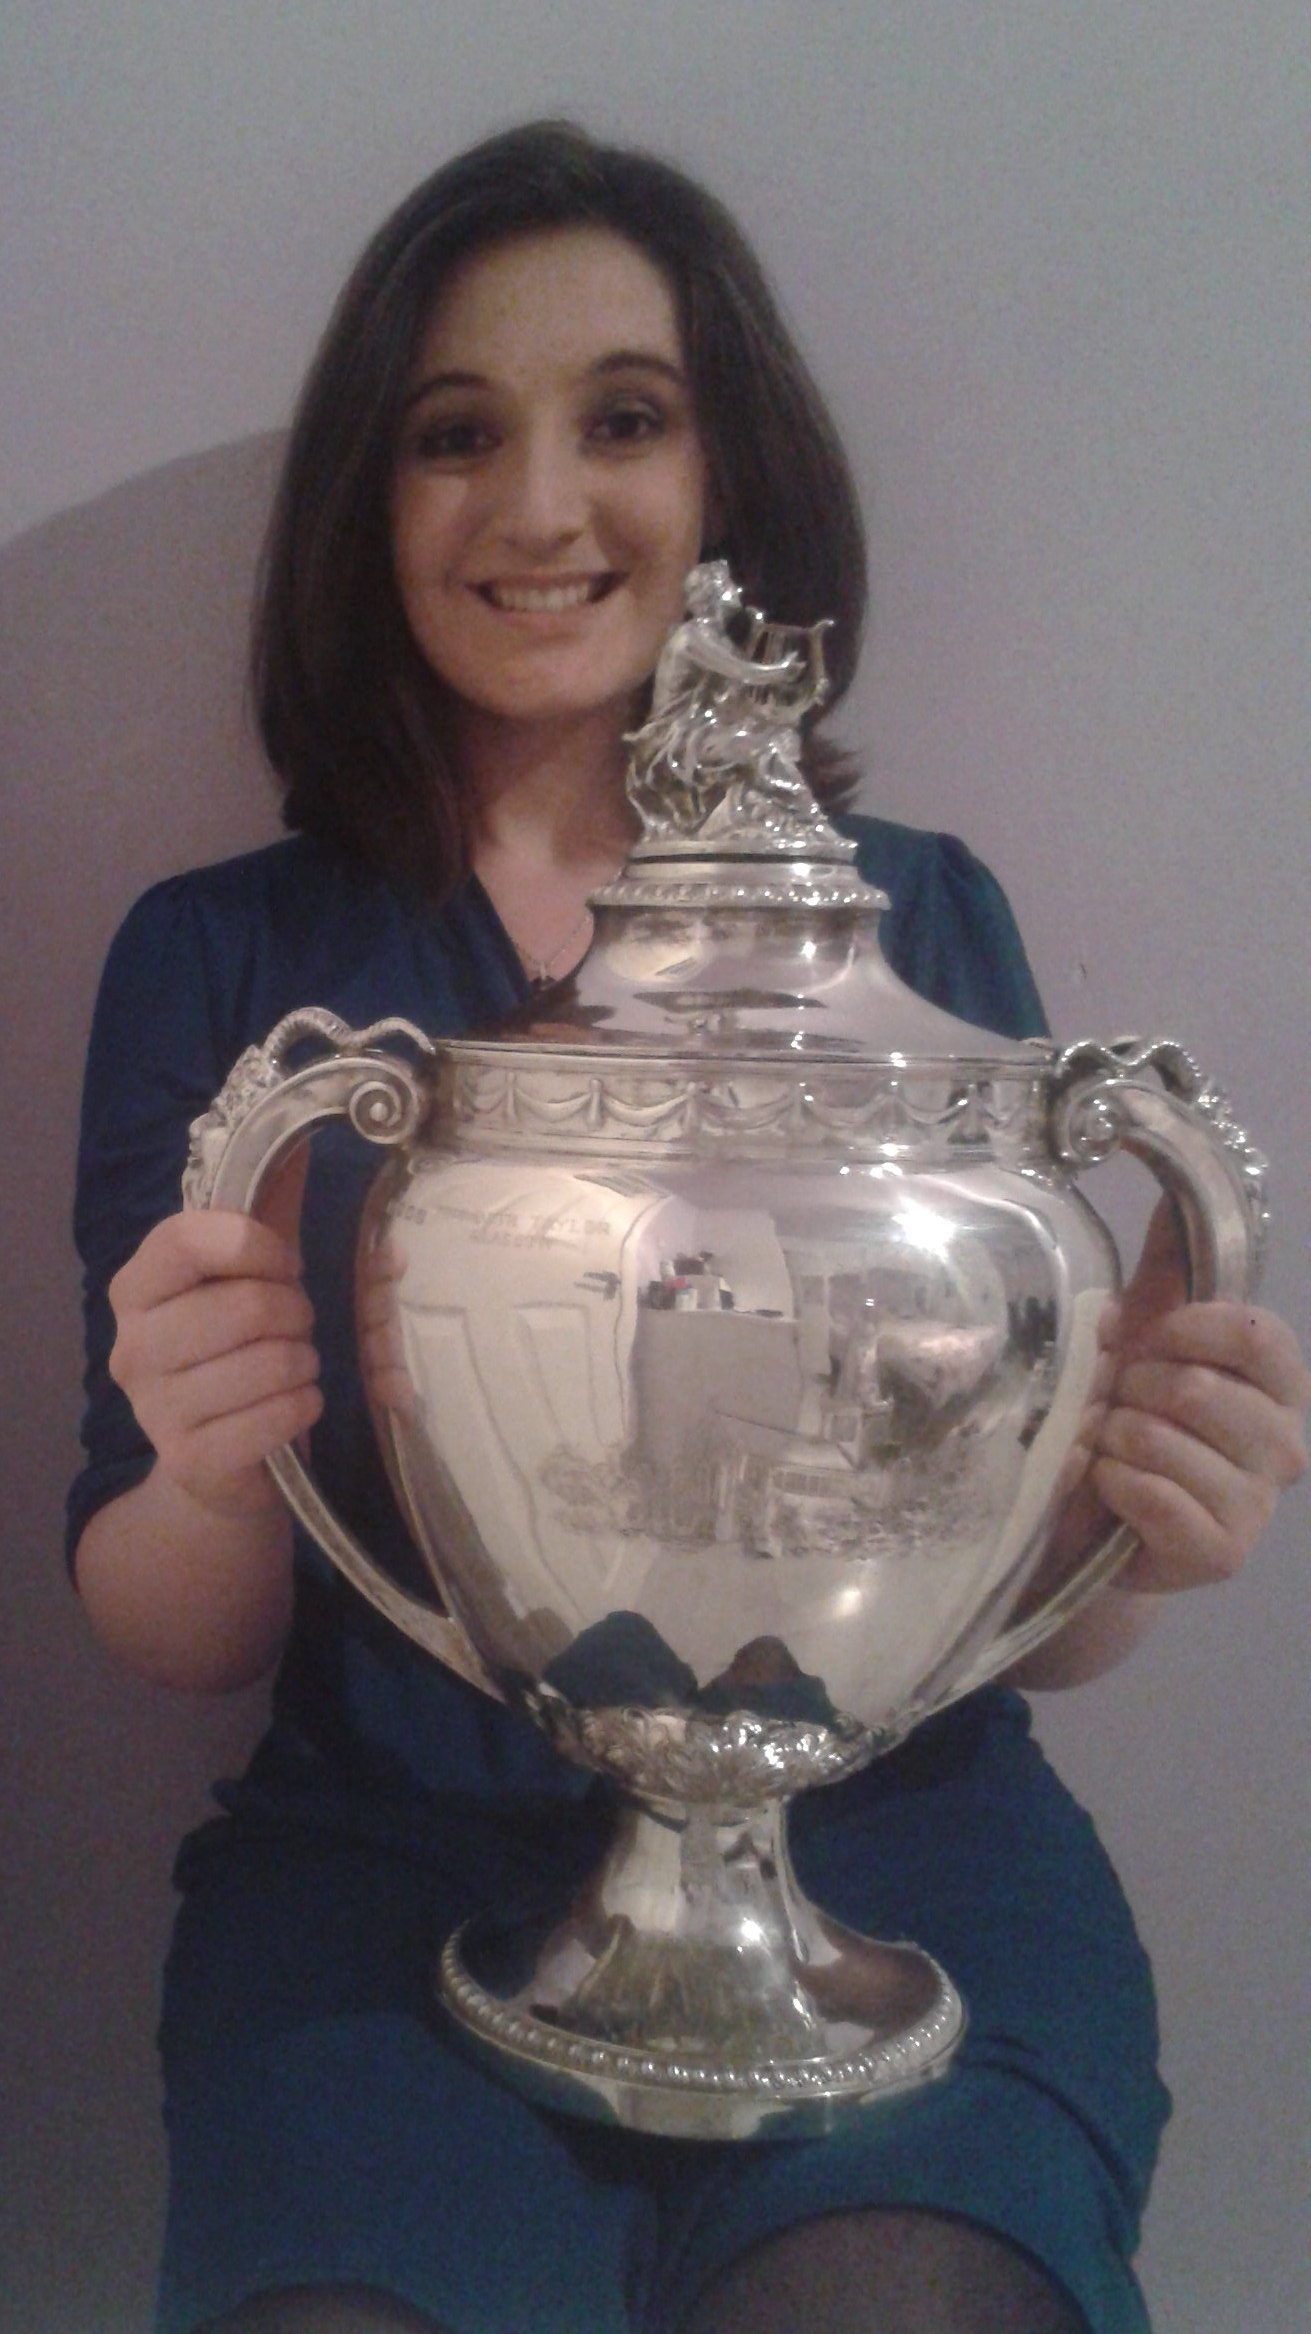 Colour photograph showing Beth Margaret Taylor with the trophy as winner of the Gervase Elwes Memorial Prize at the Glasgow Music Festival in 2014